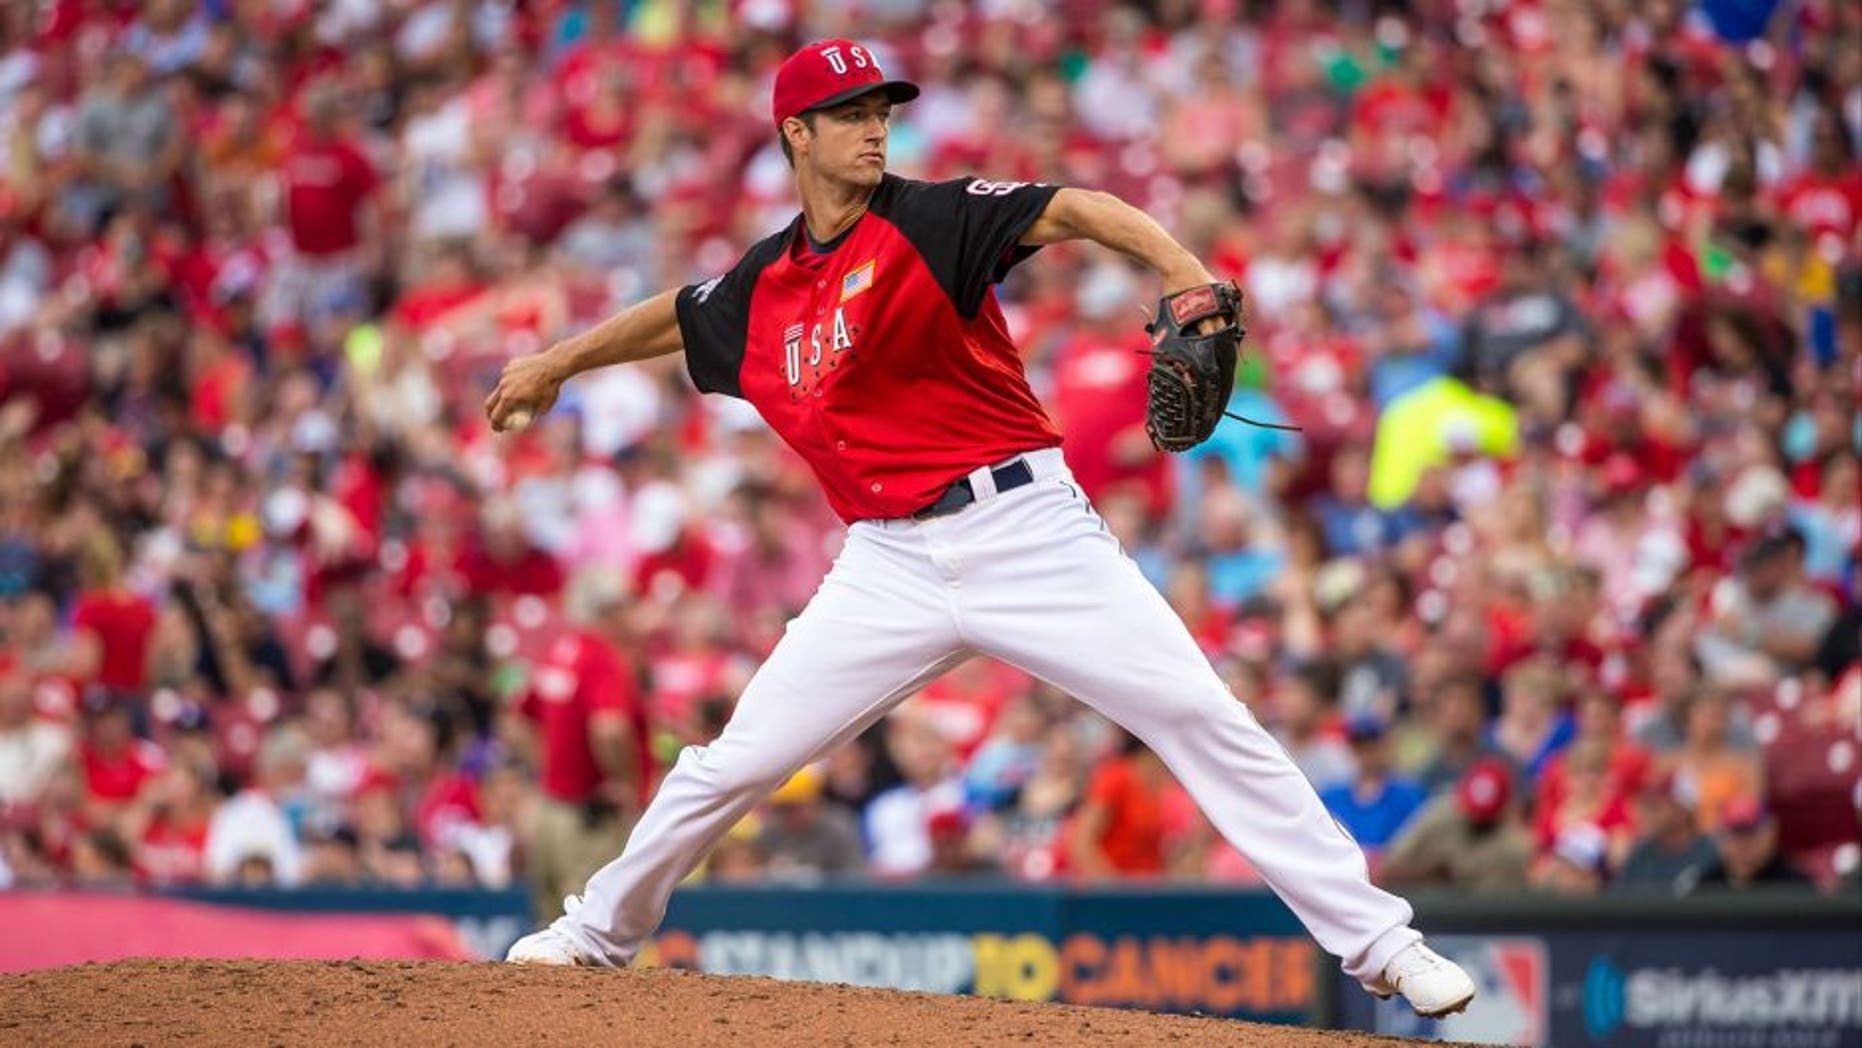 CINCINNATI, OH- JULY 12: Colin Rea #29 of the U.S. Team pitches during the SiriusXM All-Star Futures Game at the Great American Ball Park on July 12, 2015 in Cincinnati, Ohio. (Photo by Brace Hemmelgarn/Minnesota Twins/Getty Images)